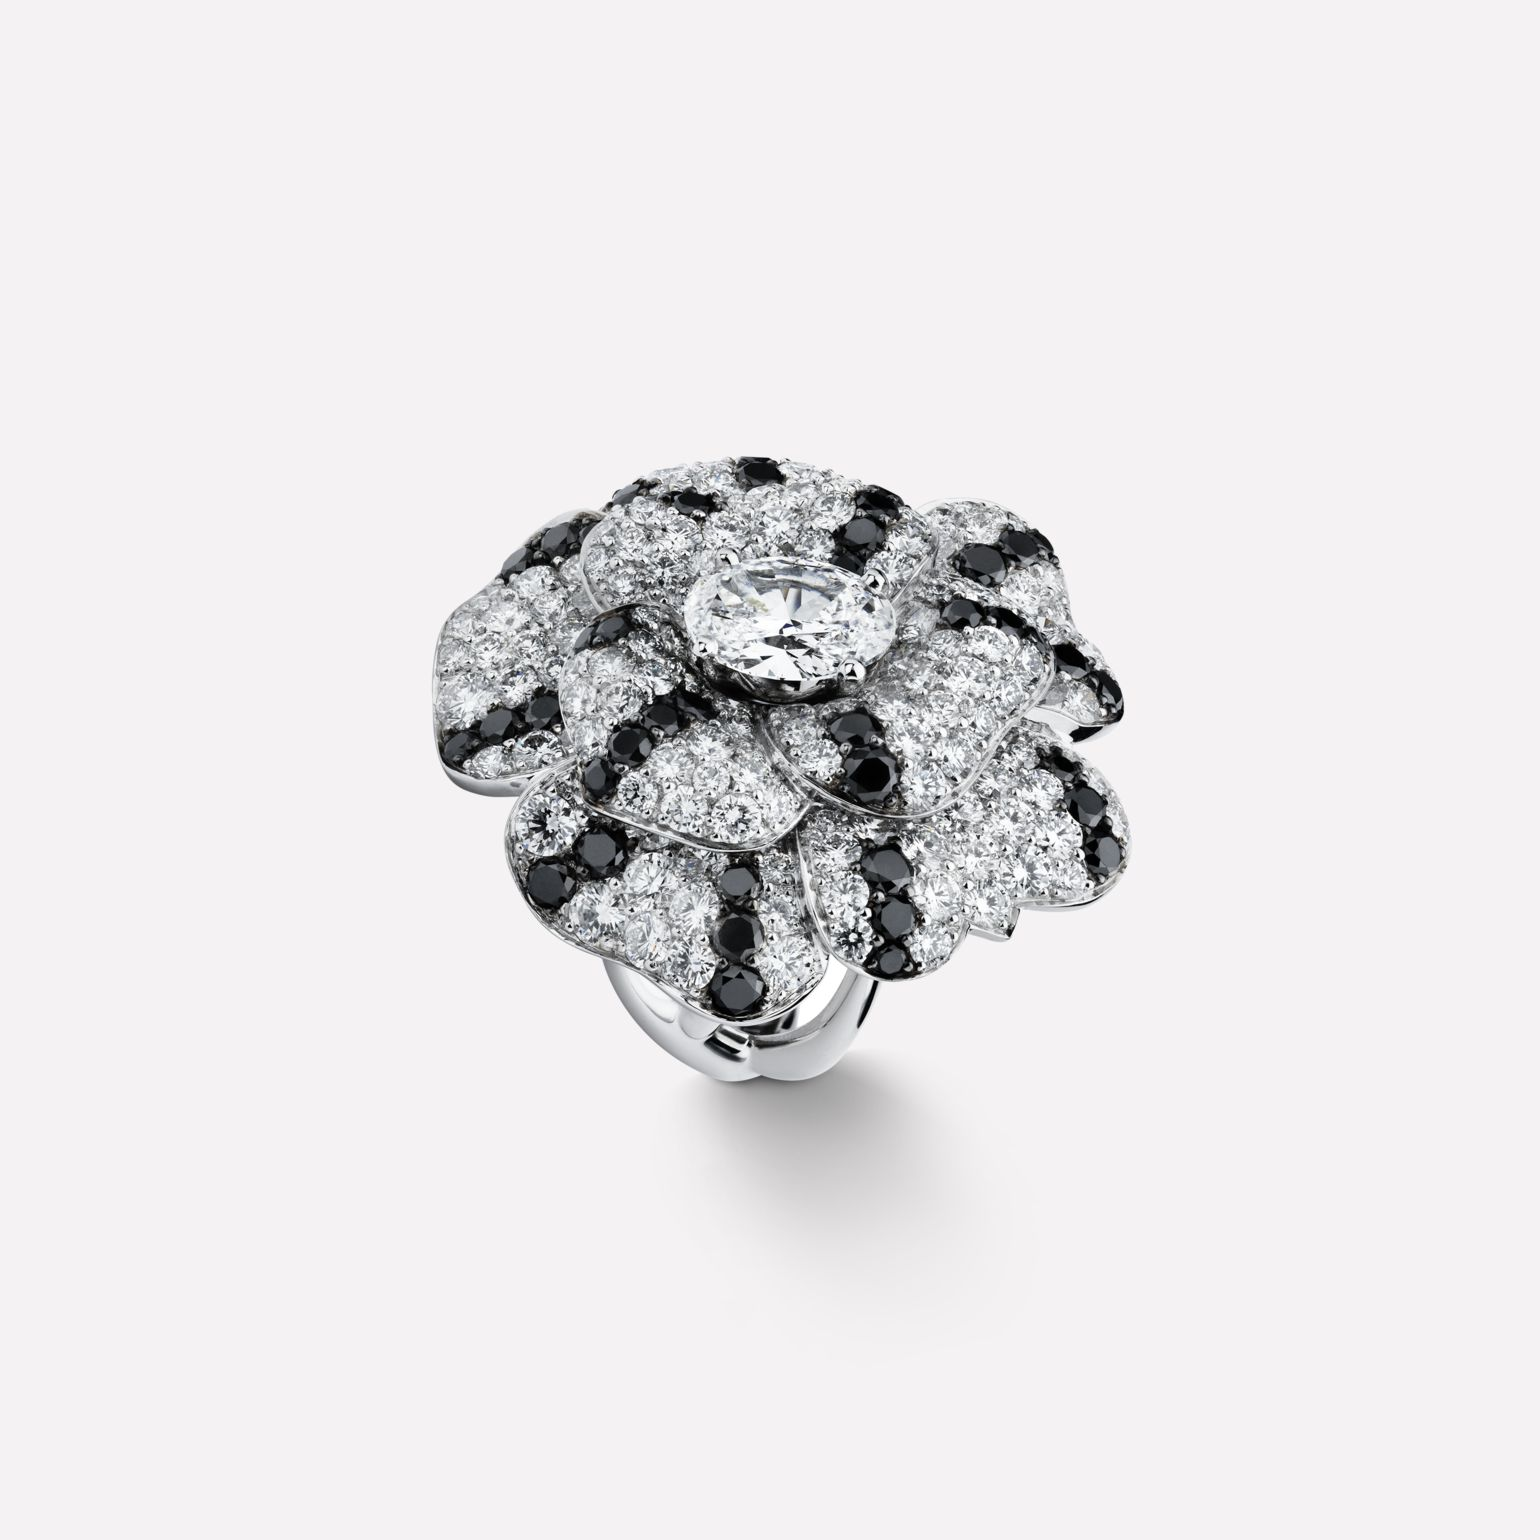 Camélia ring Pétales de Camélia ring in 18K white gold and black diamonds with one center diamond